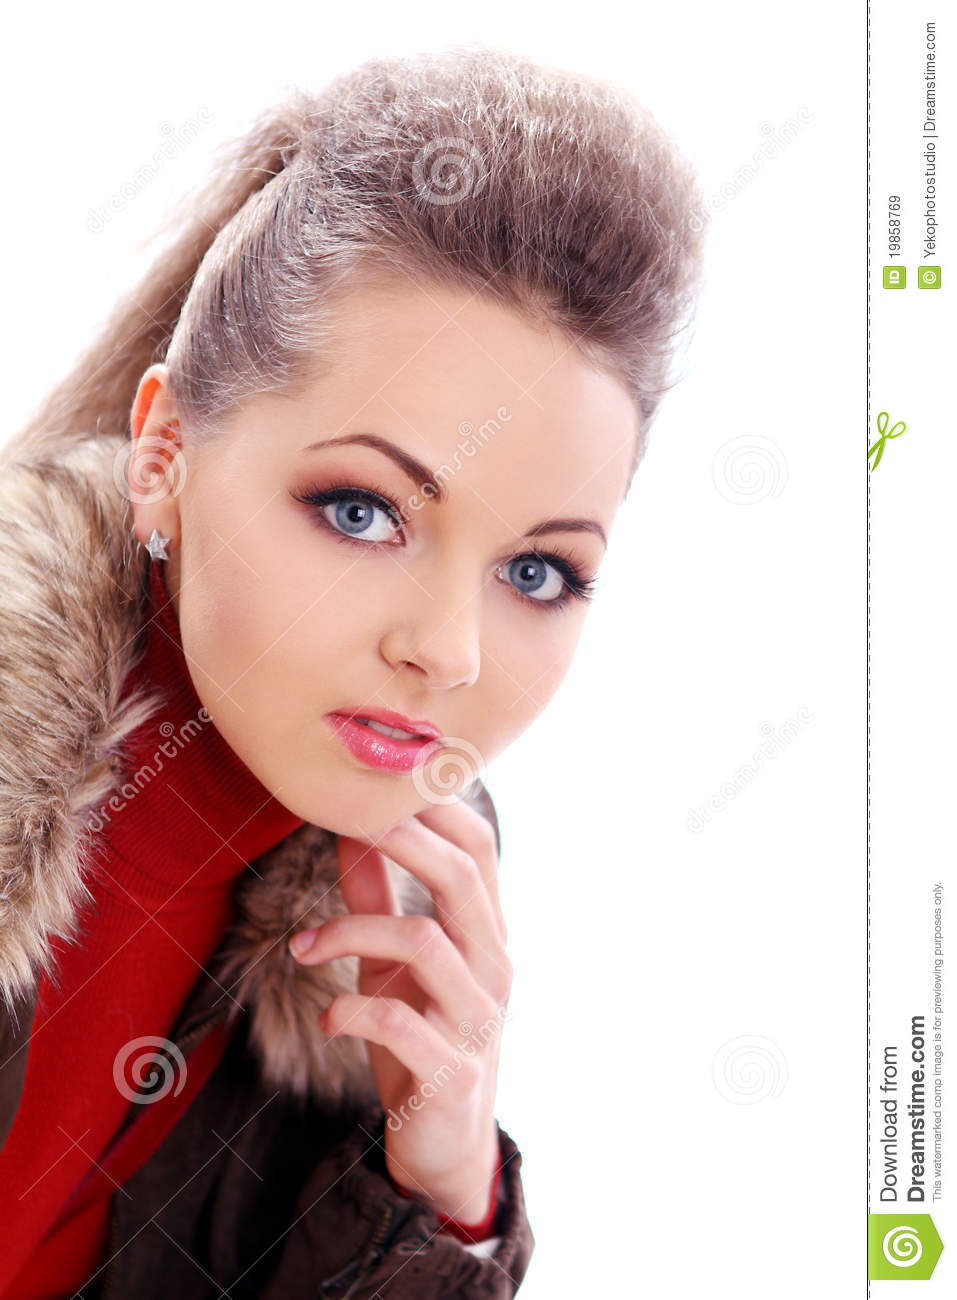 Very Cute Asian Girl: Beautiful And Very Cute Lady Stock Image